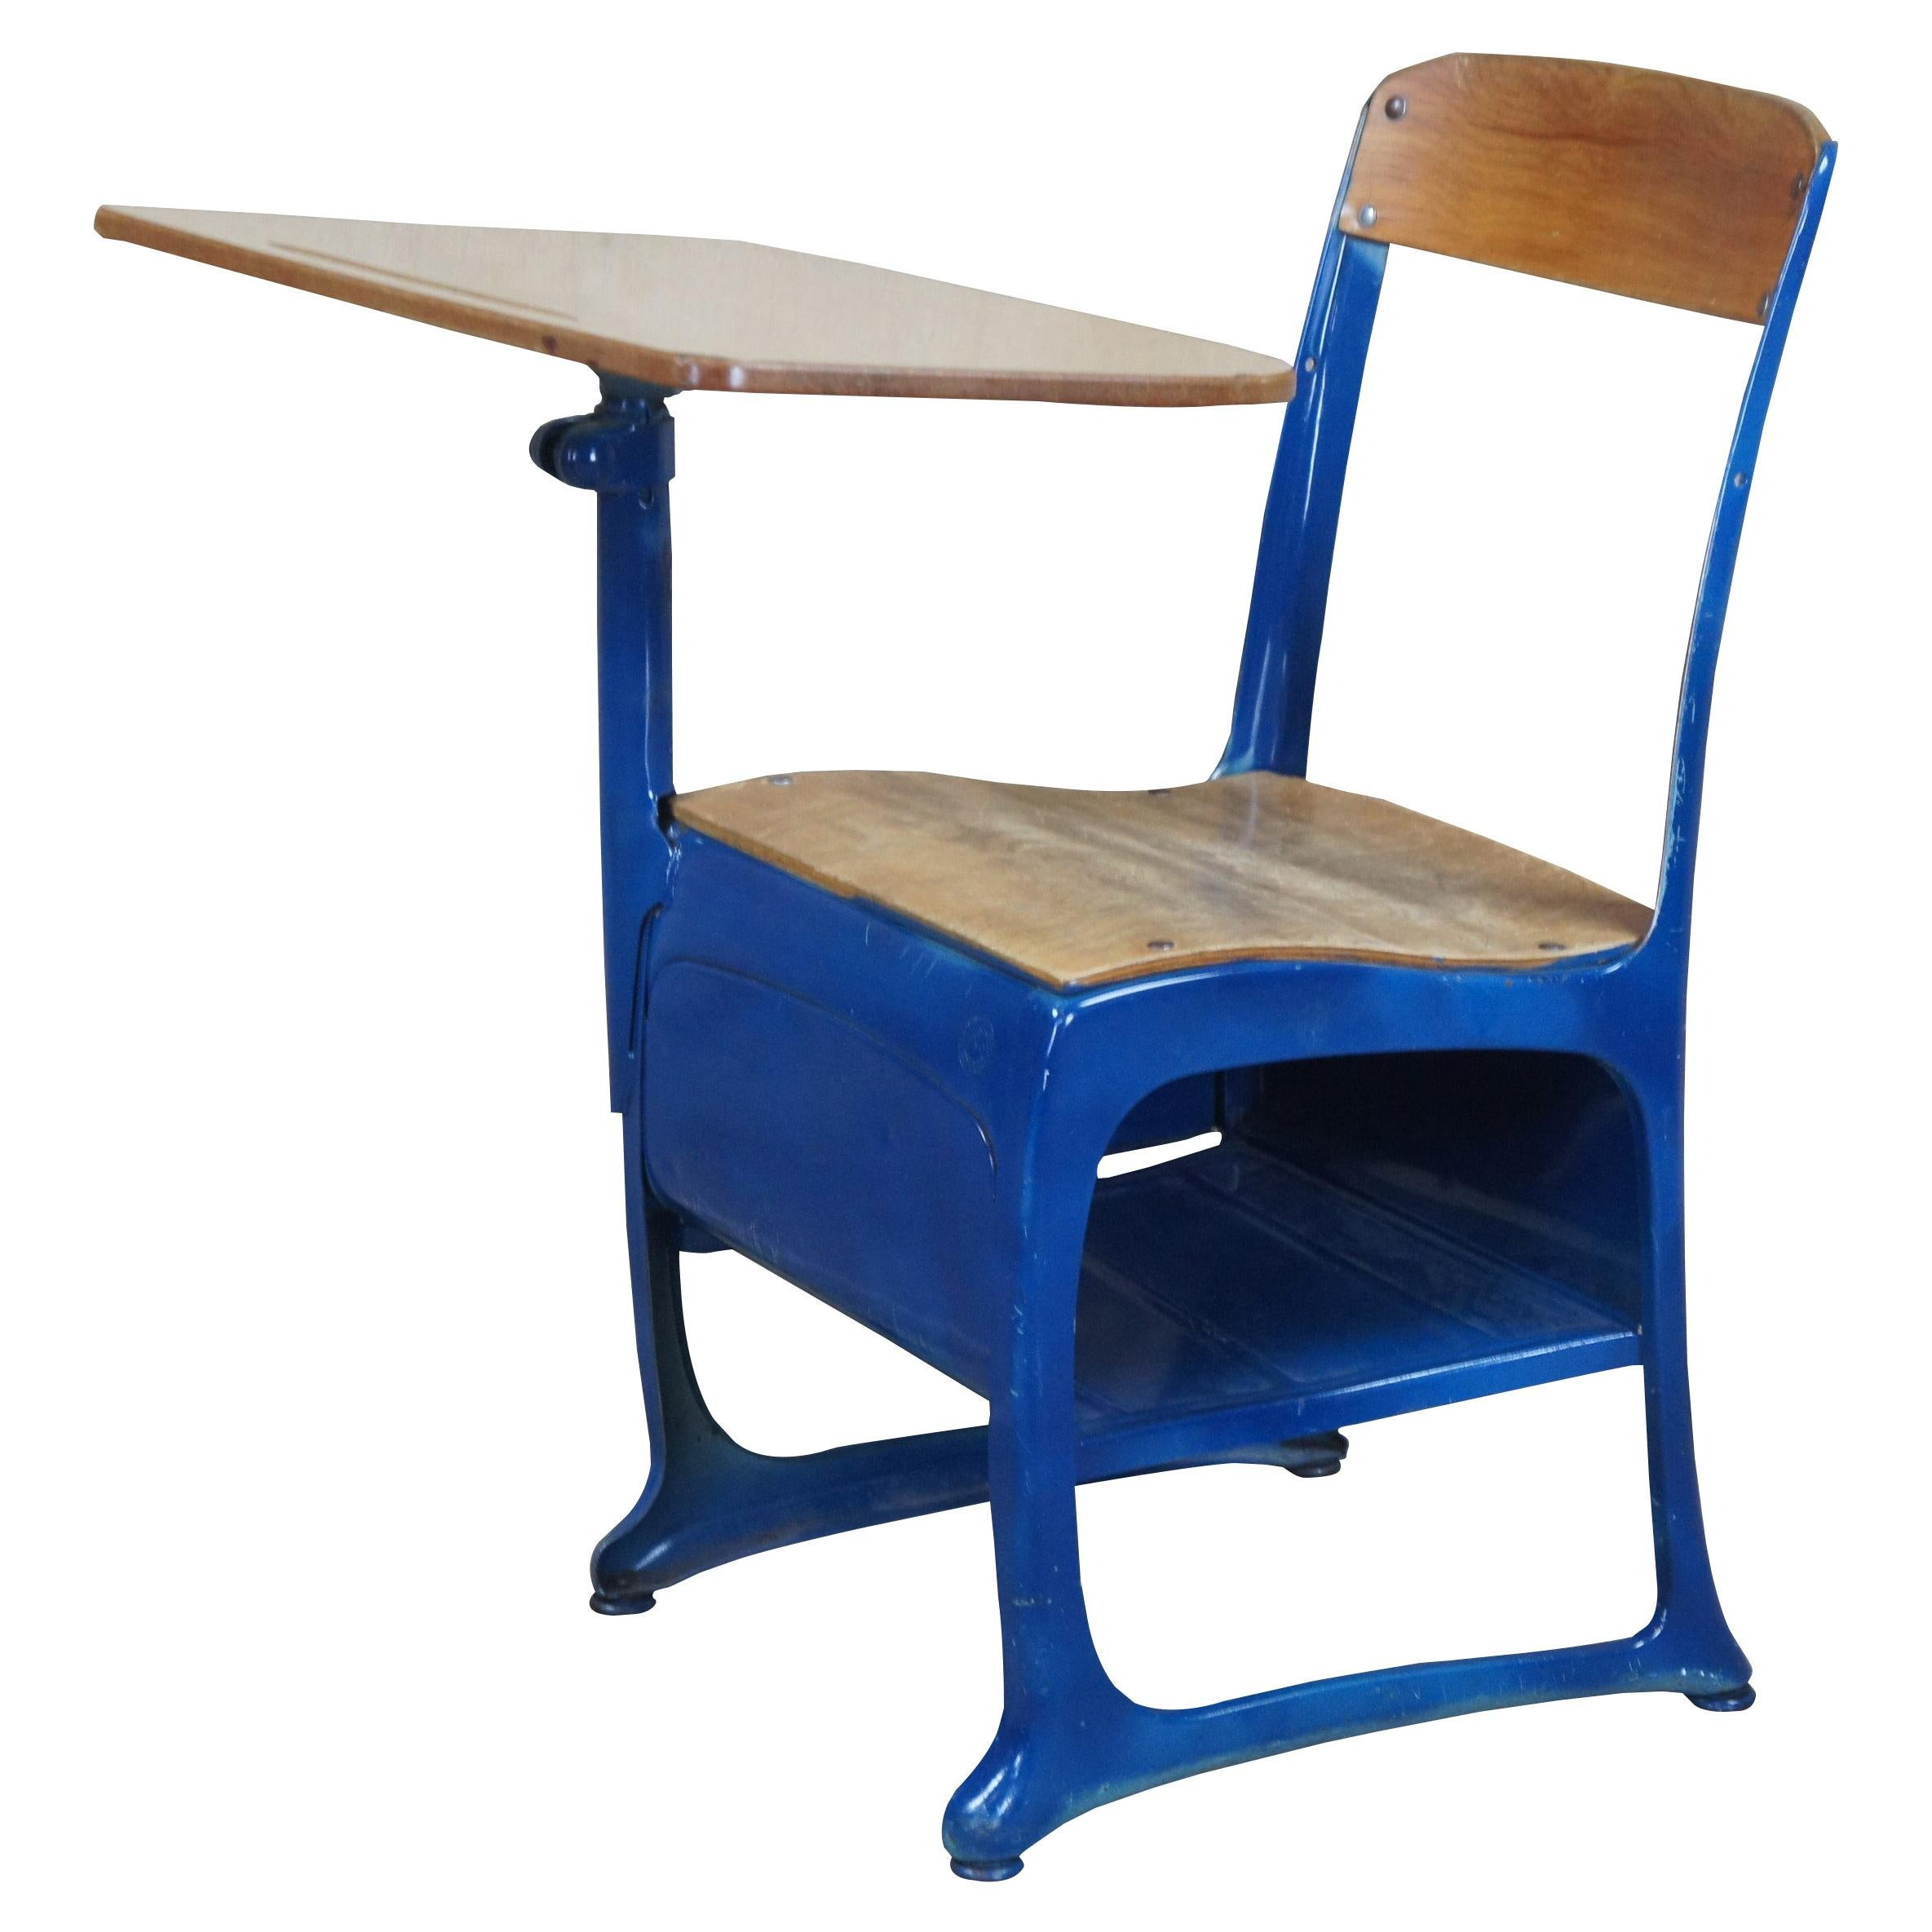 American Seating Envoy Students Childs School Desk Blue Mid Century Industrial